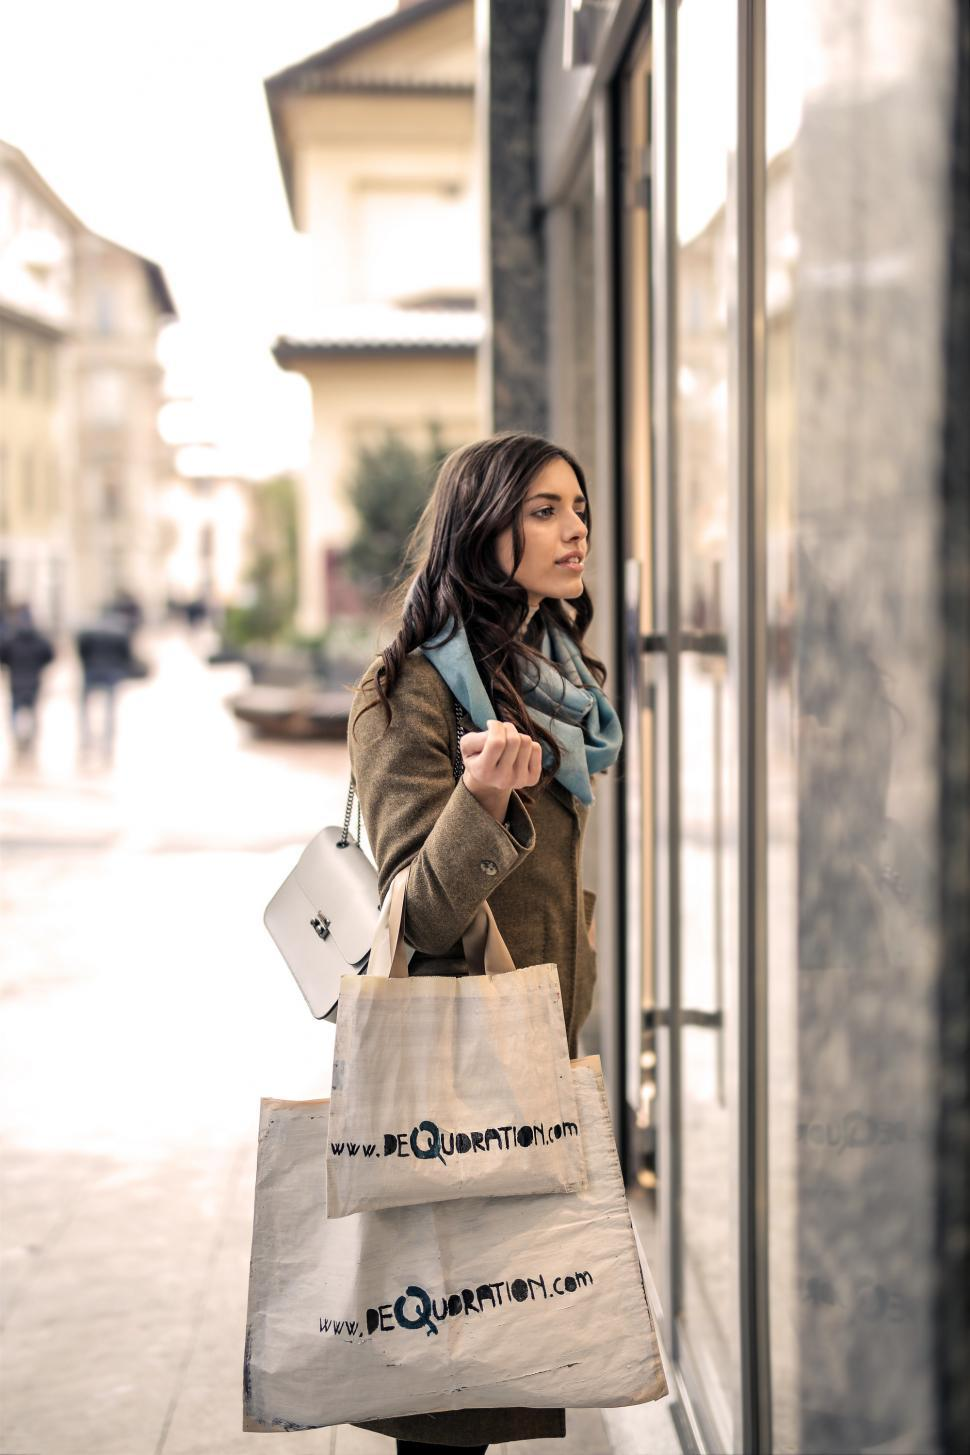 Download Free Stock HD Photo of A young woman holding shopping bags in her hand Online